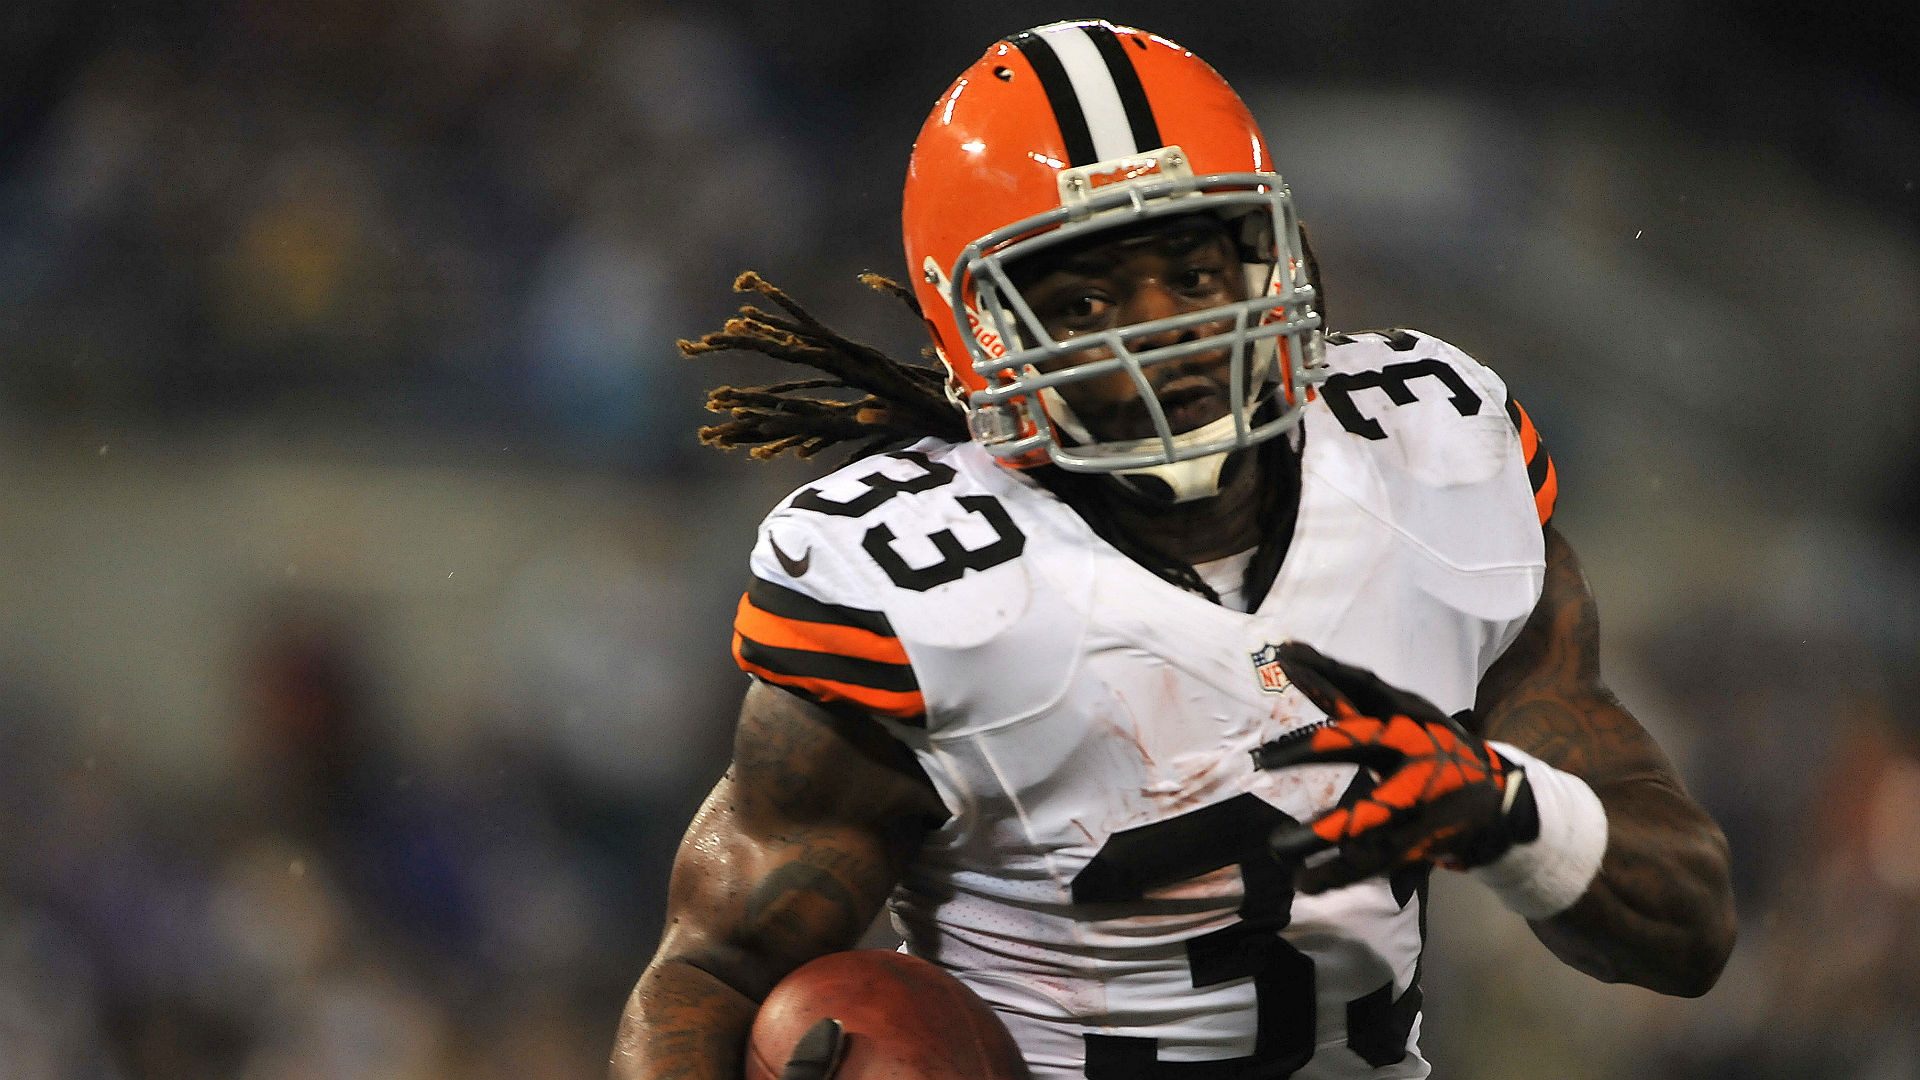 Saskatchewan Roughriders sign former National Football League running back Trent Richardson